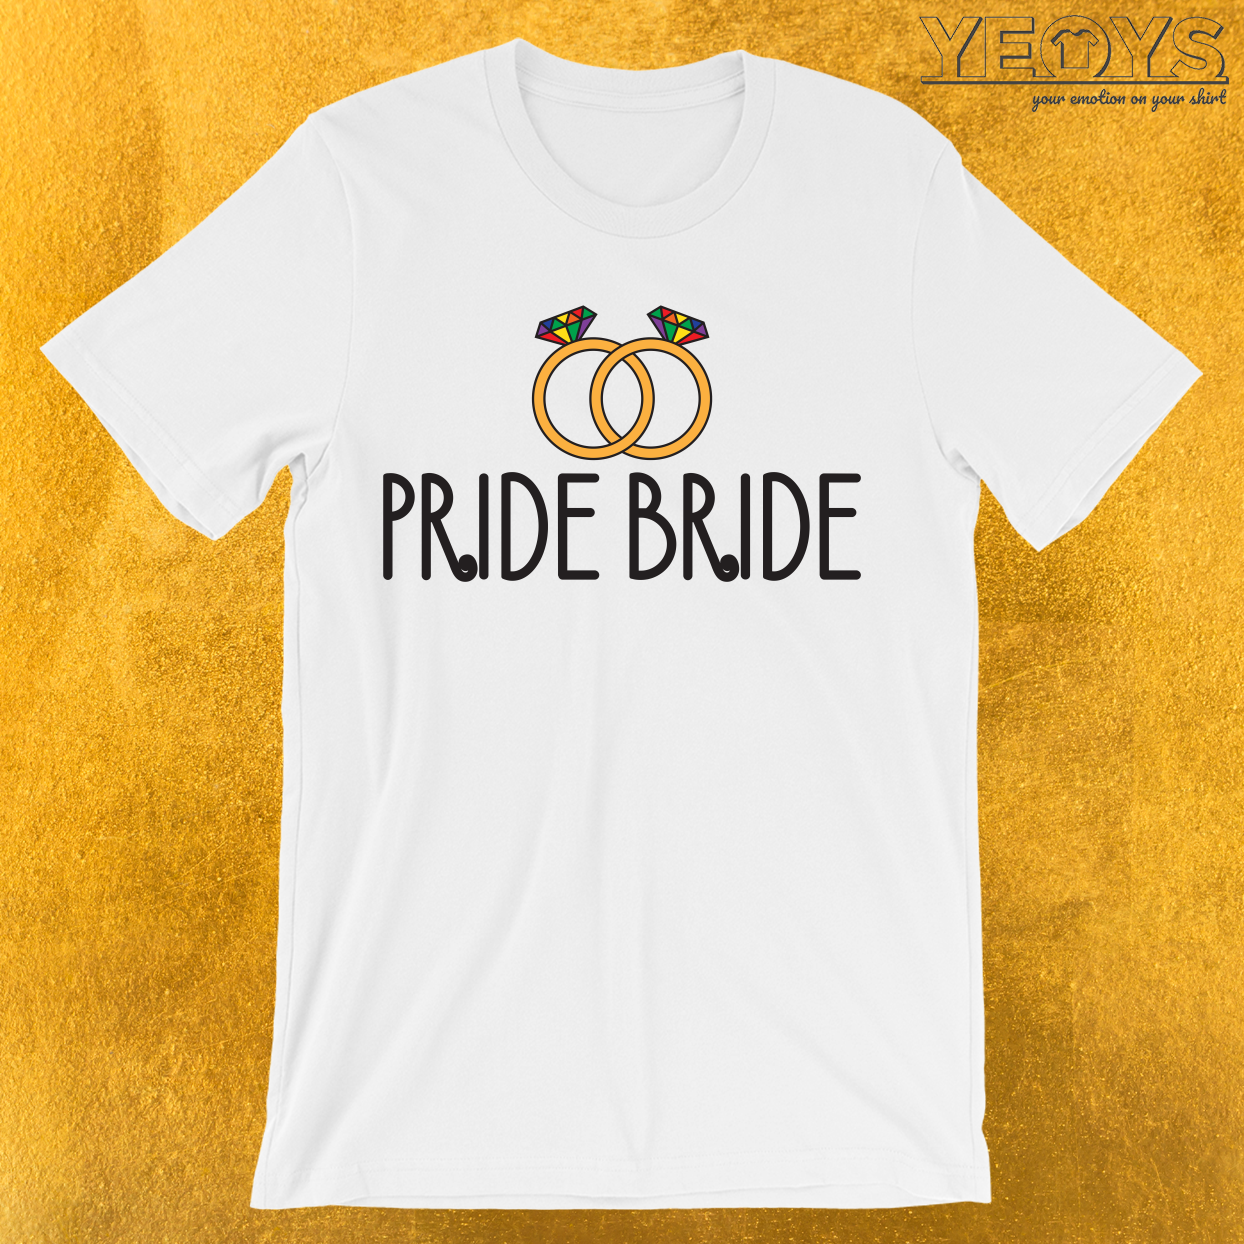 Pride Bride T-Shirt